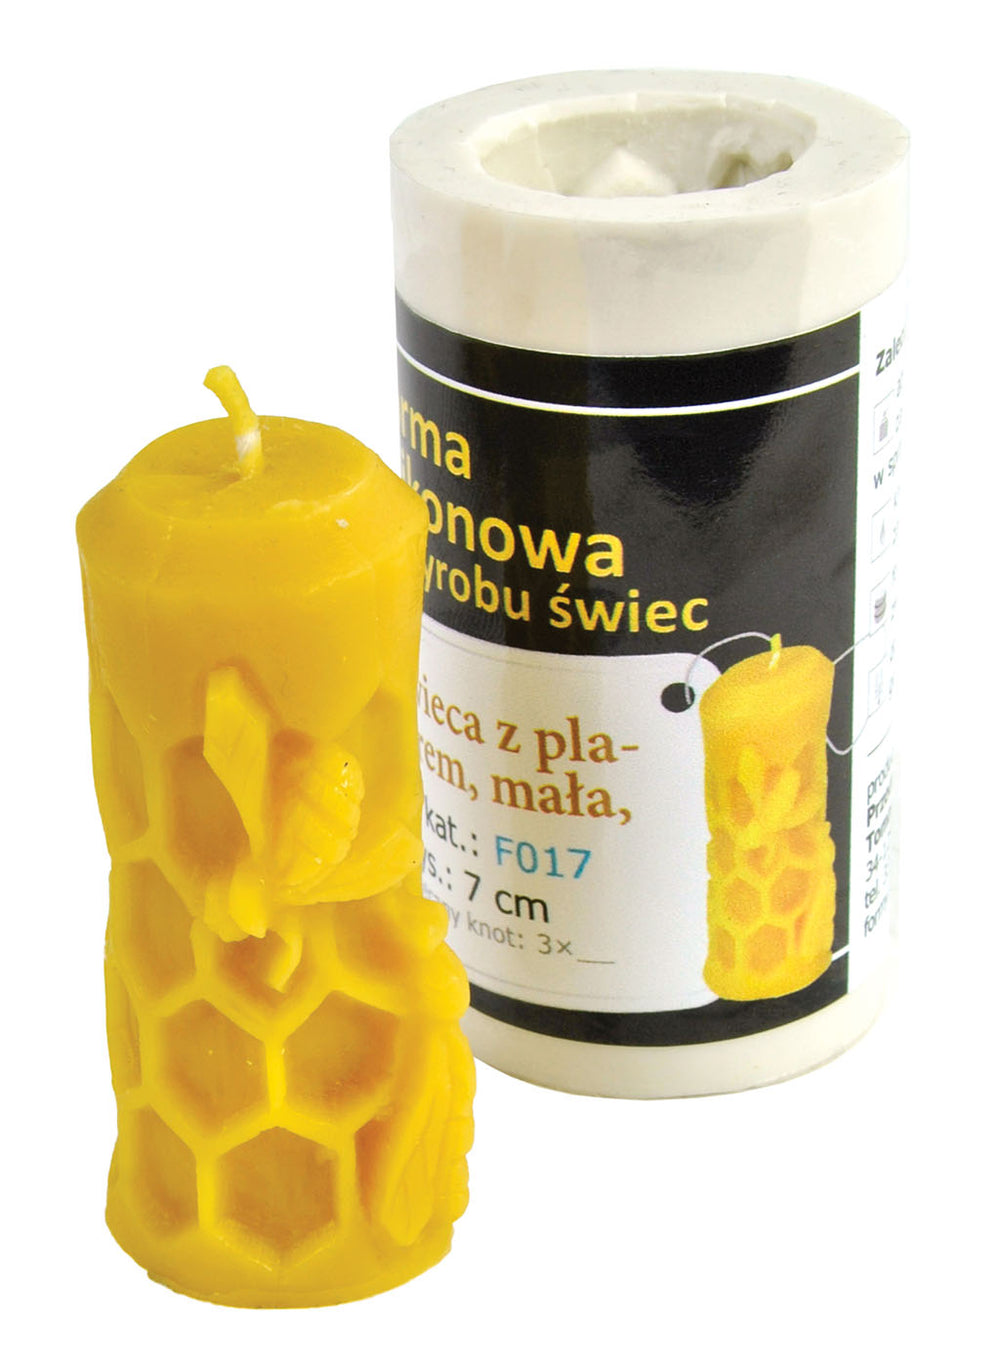 Candle with Honeycomb Candle Mold